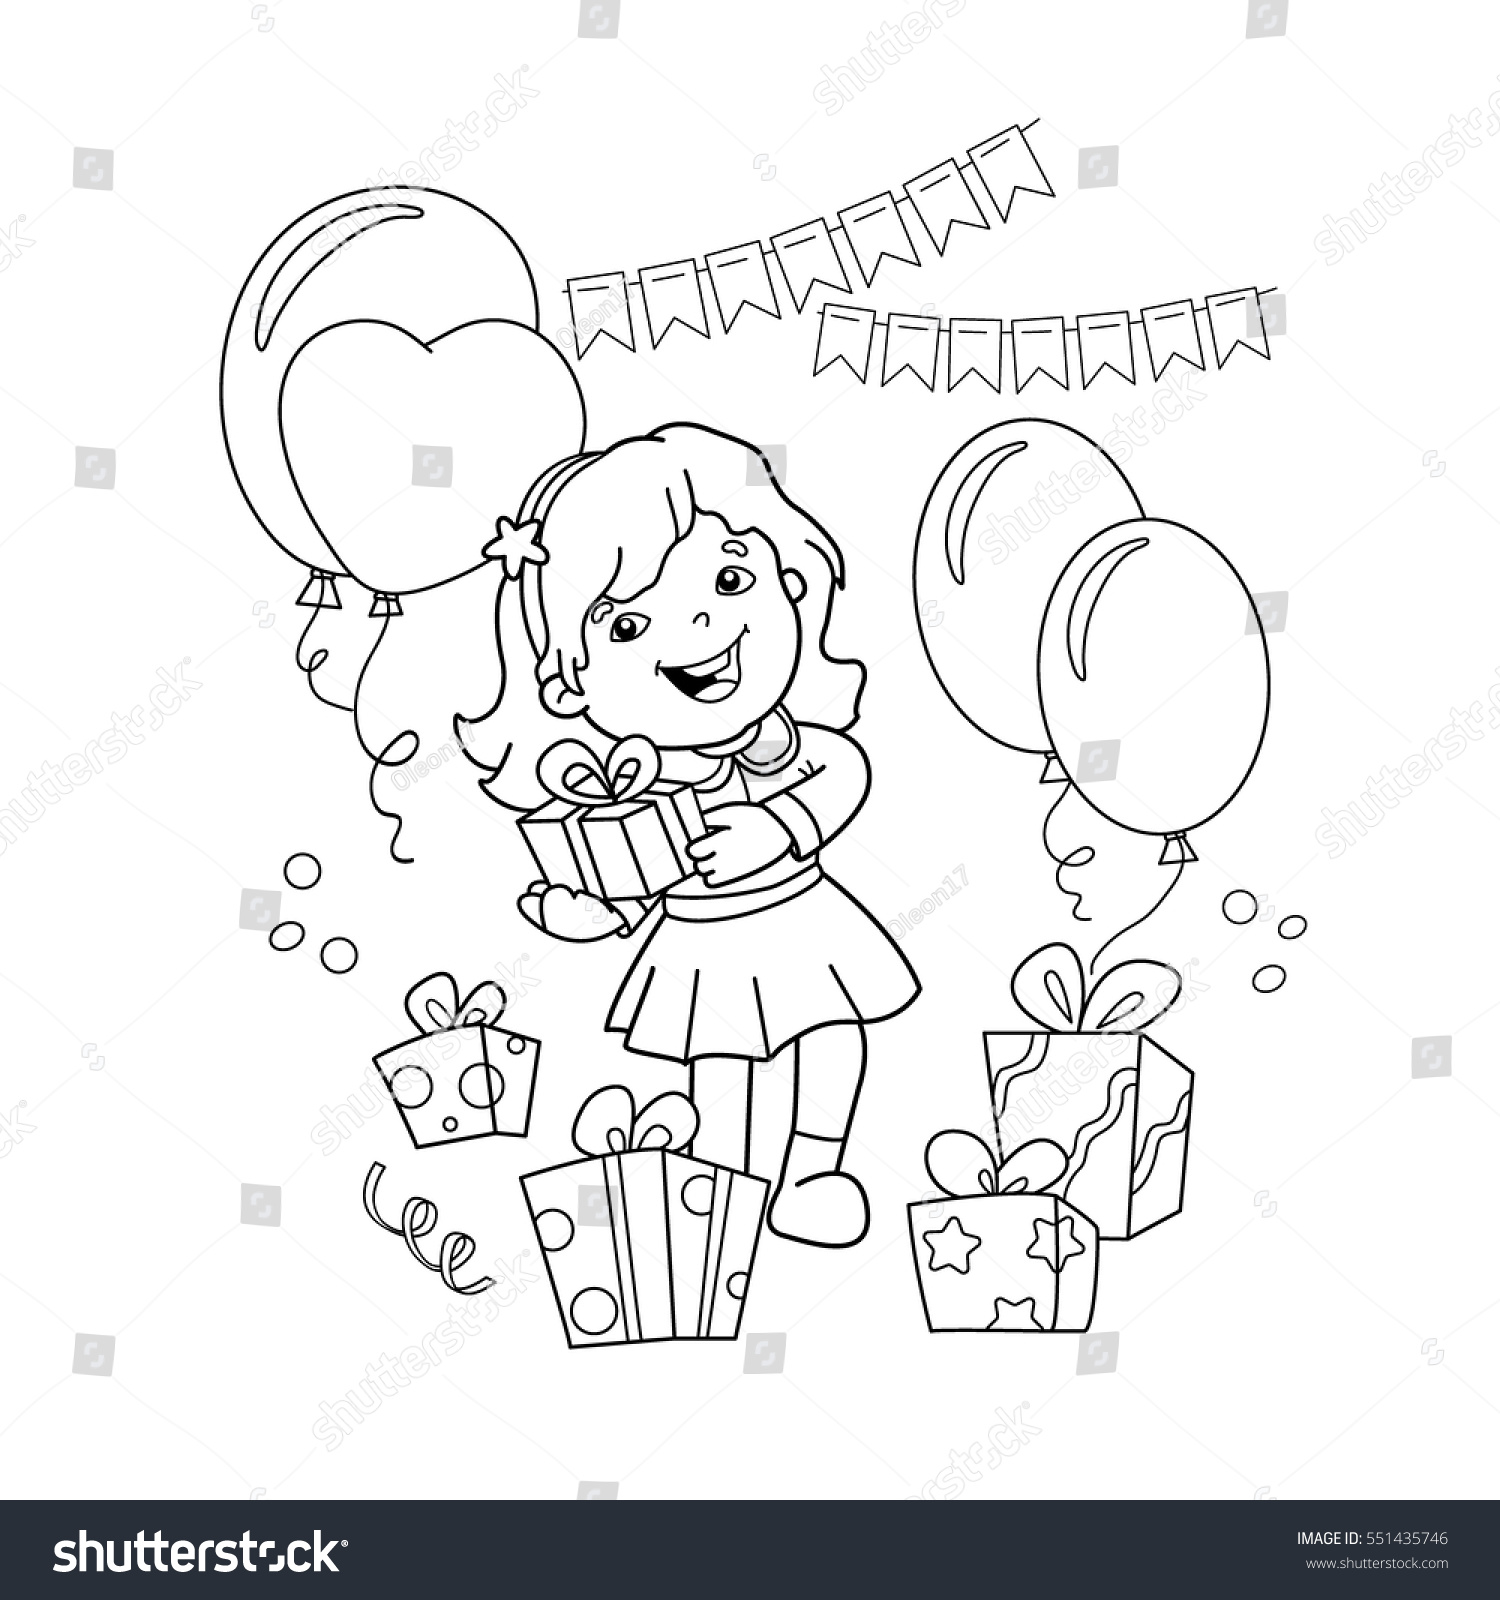 coloring page outline of cartoon girl with a gift at the holiday coloring book for - Holiday Coloring Book